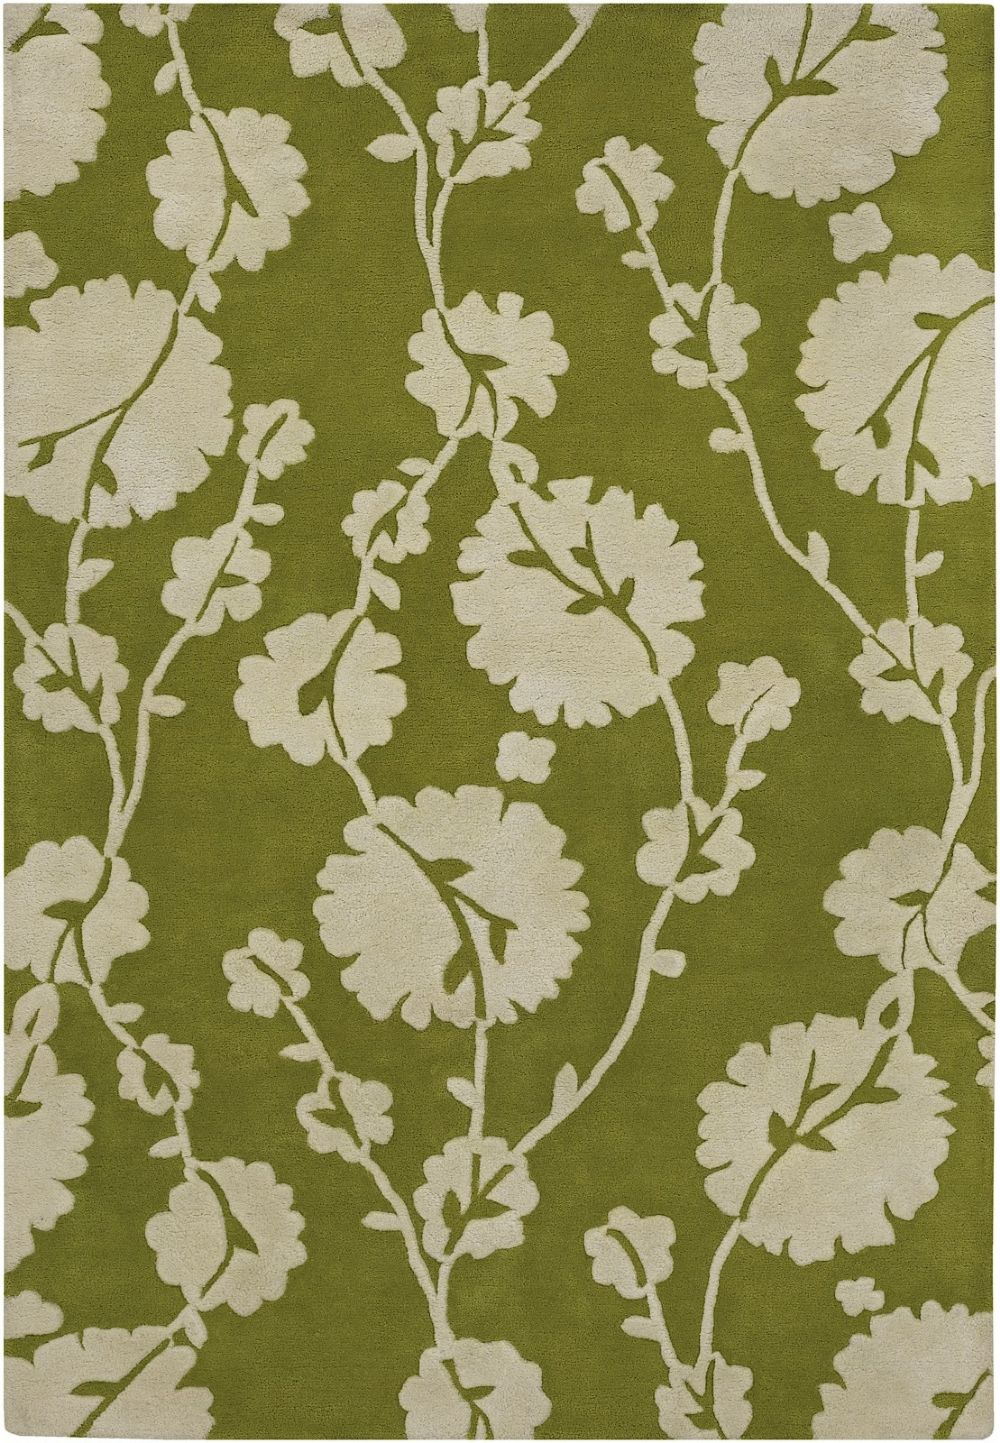 chandra amy butler contemporary area rug collection